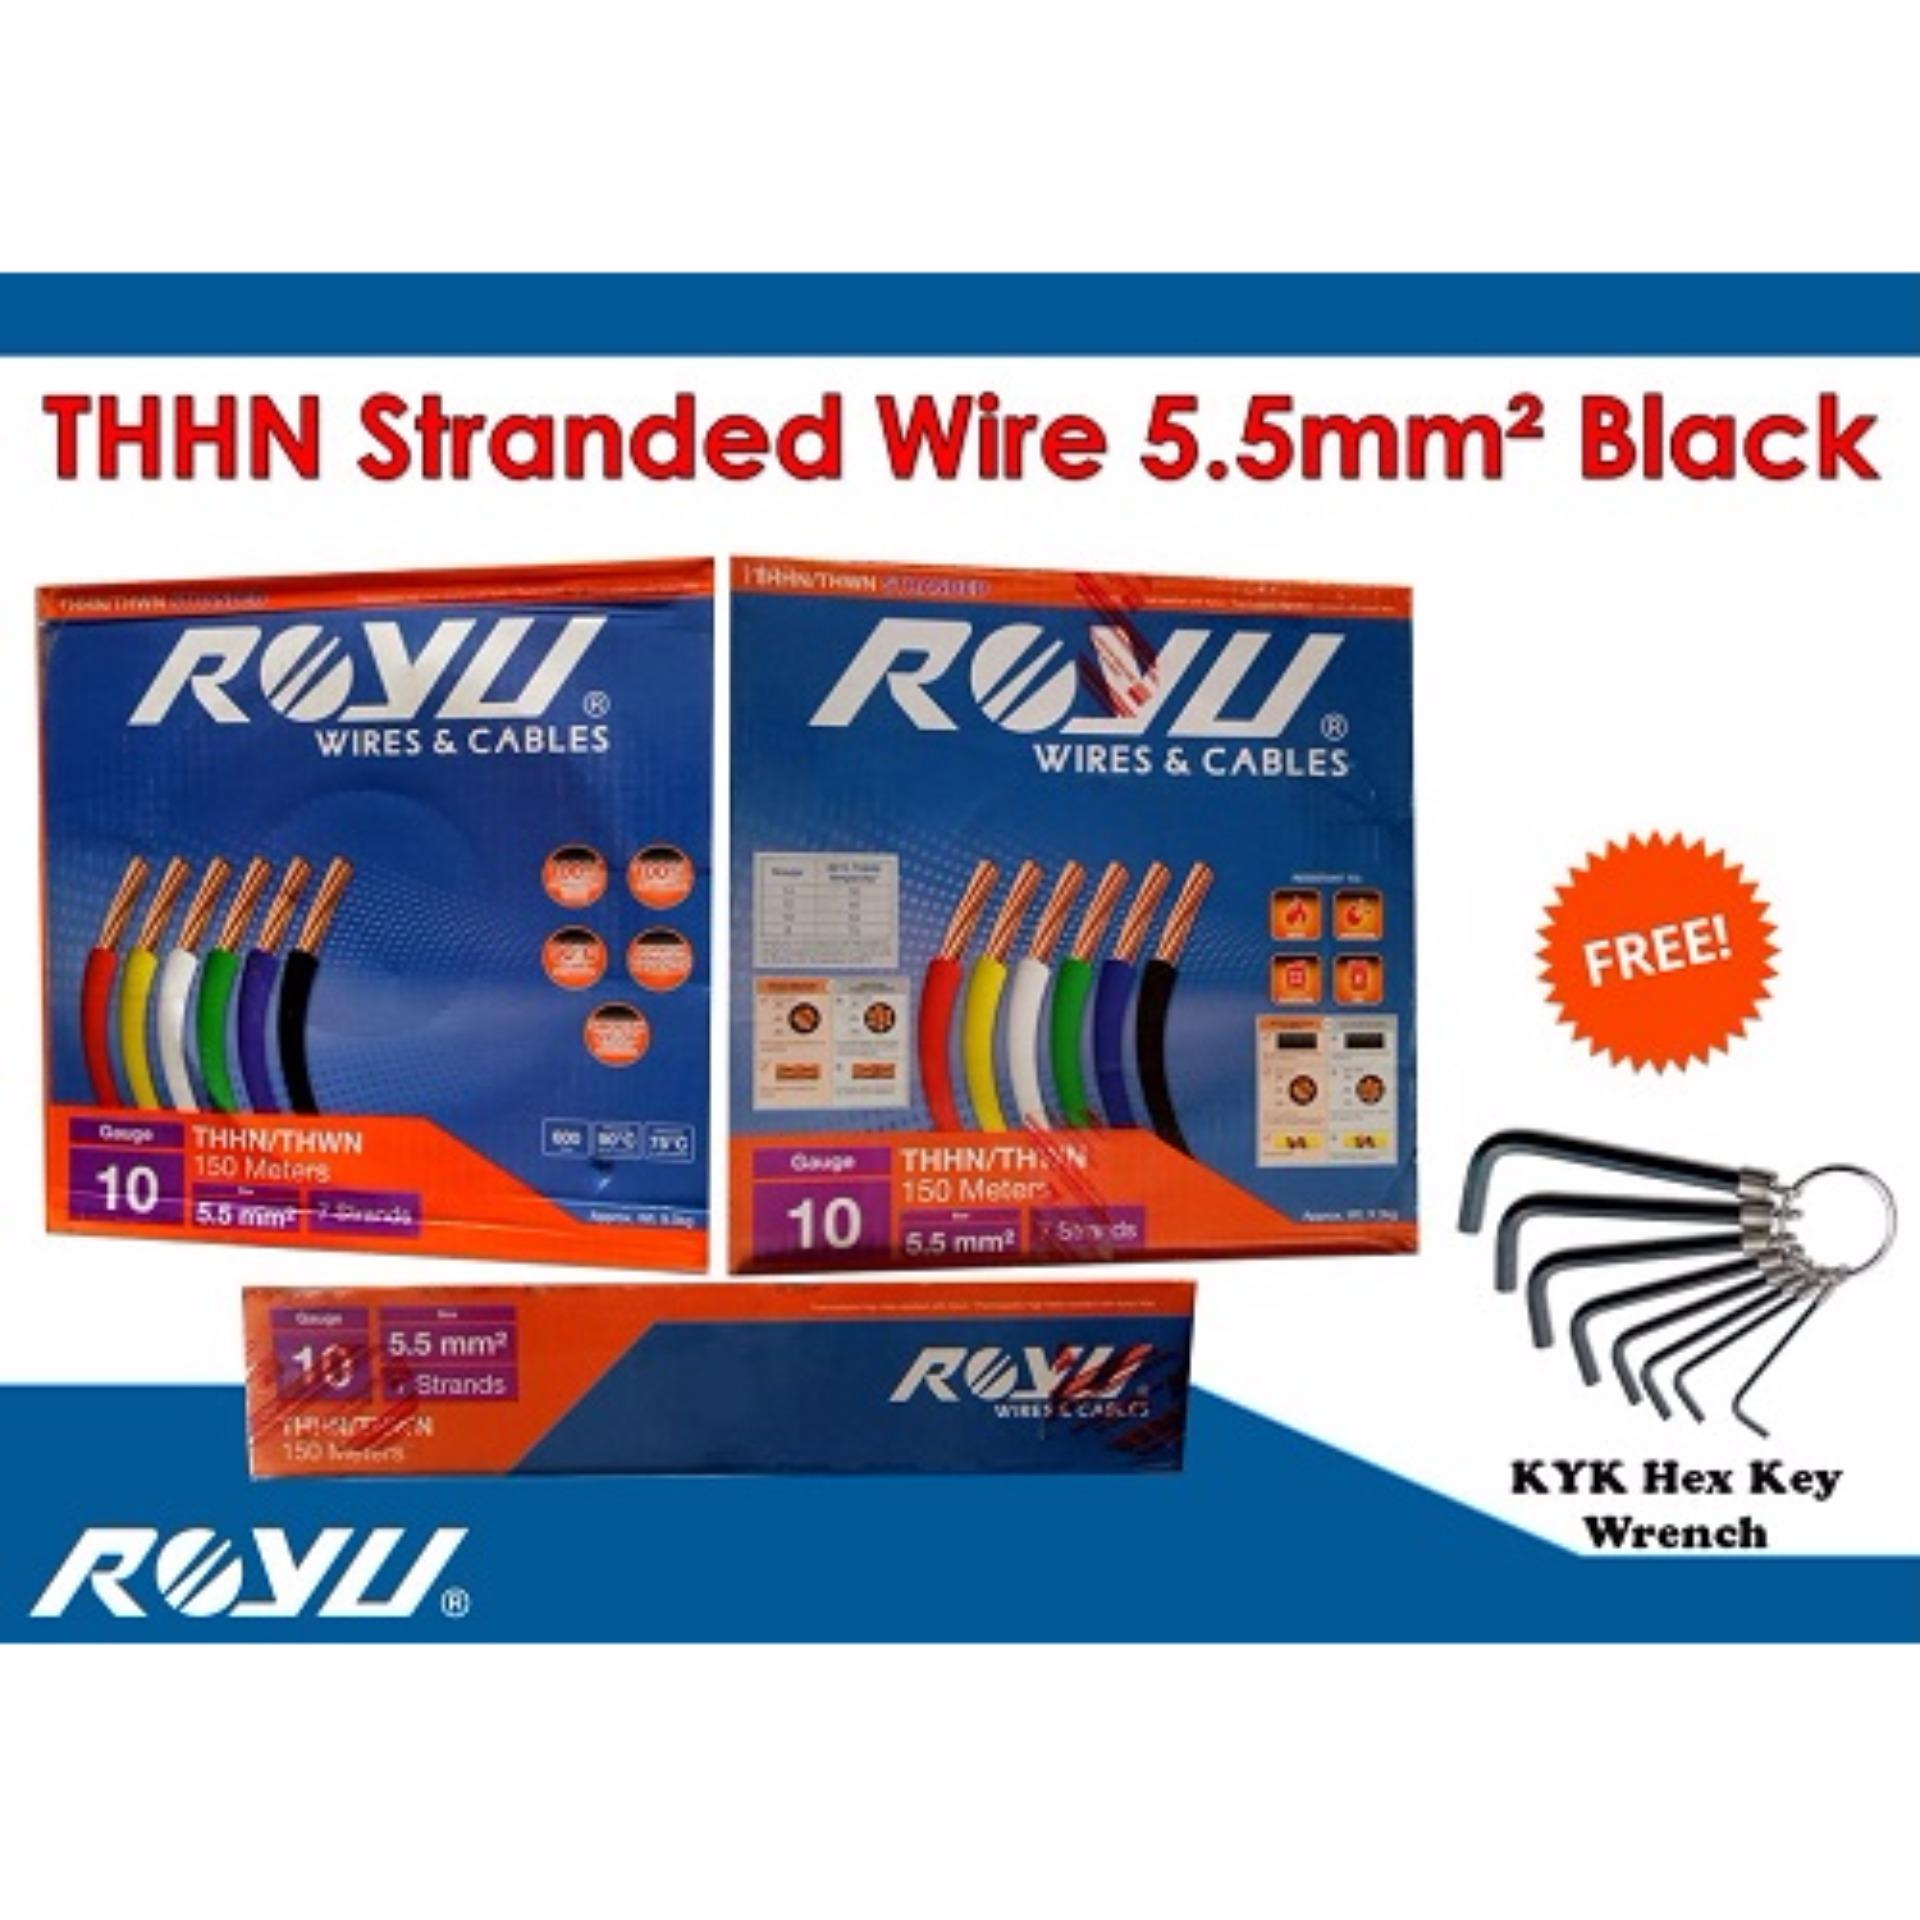 Philippines 1 box royu thhn stranded wire 55mm black with 1 box royu thhn stranded wire 55mm black with free hex key keyboard keysfo Image collections